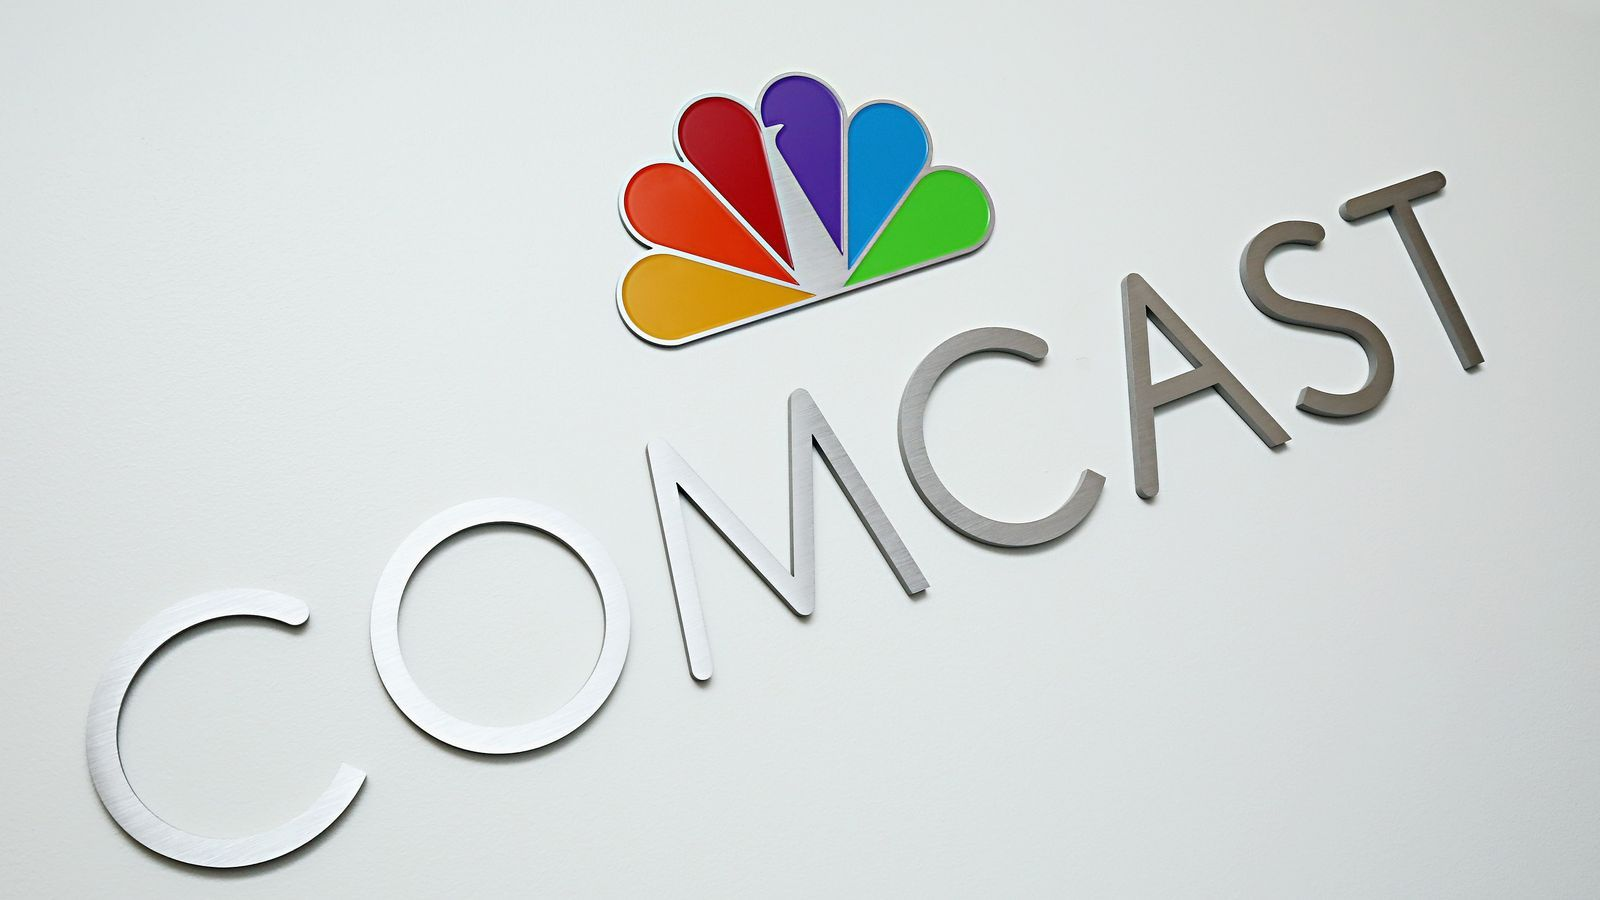 Comcast did great last year by only losing 36,000 TV